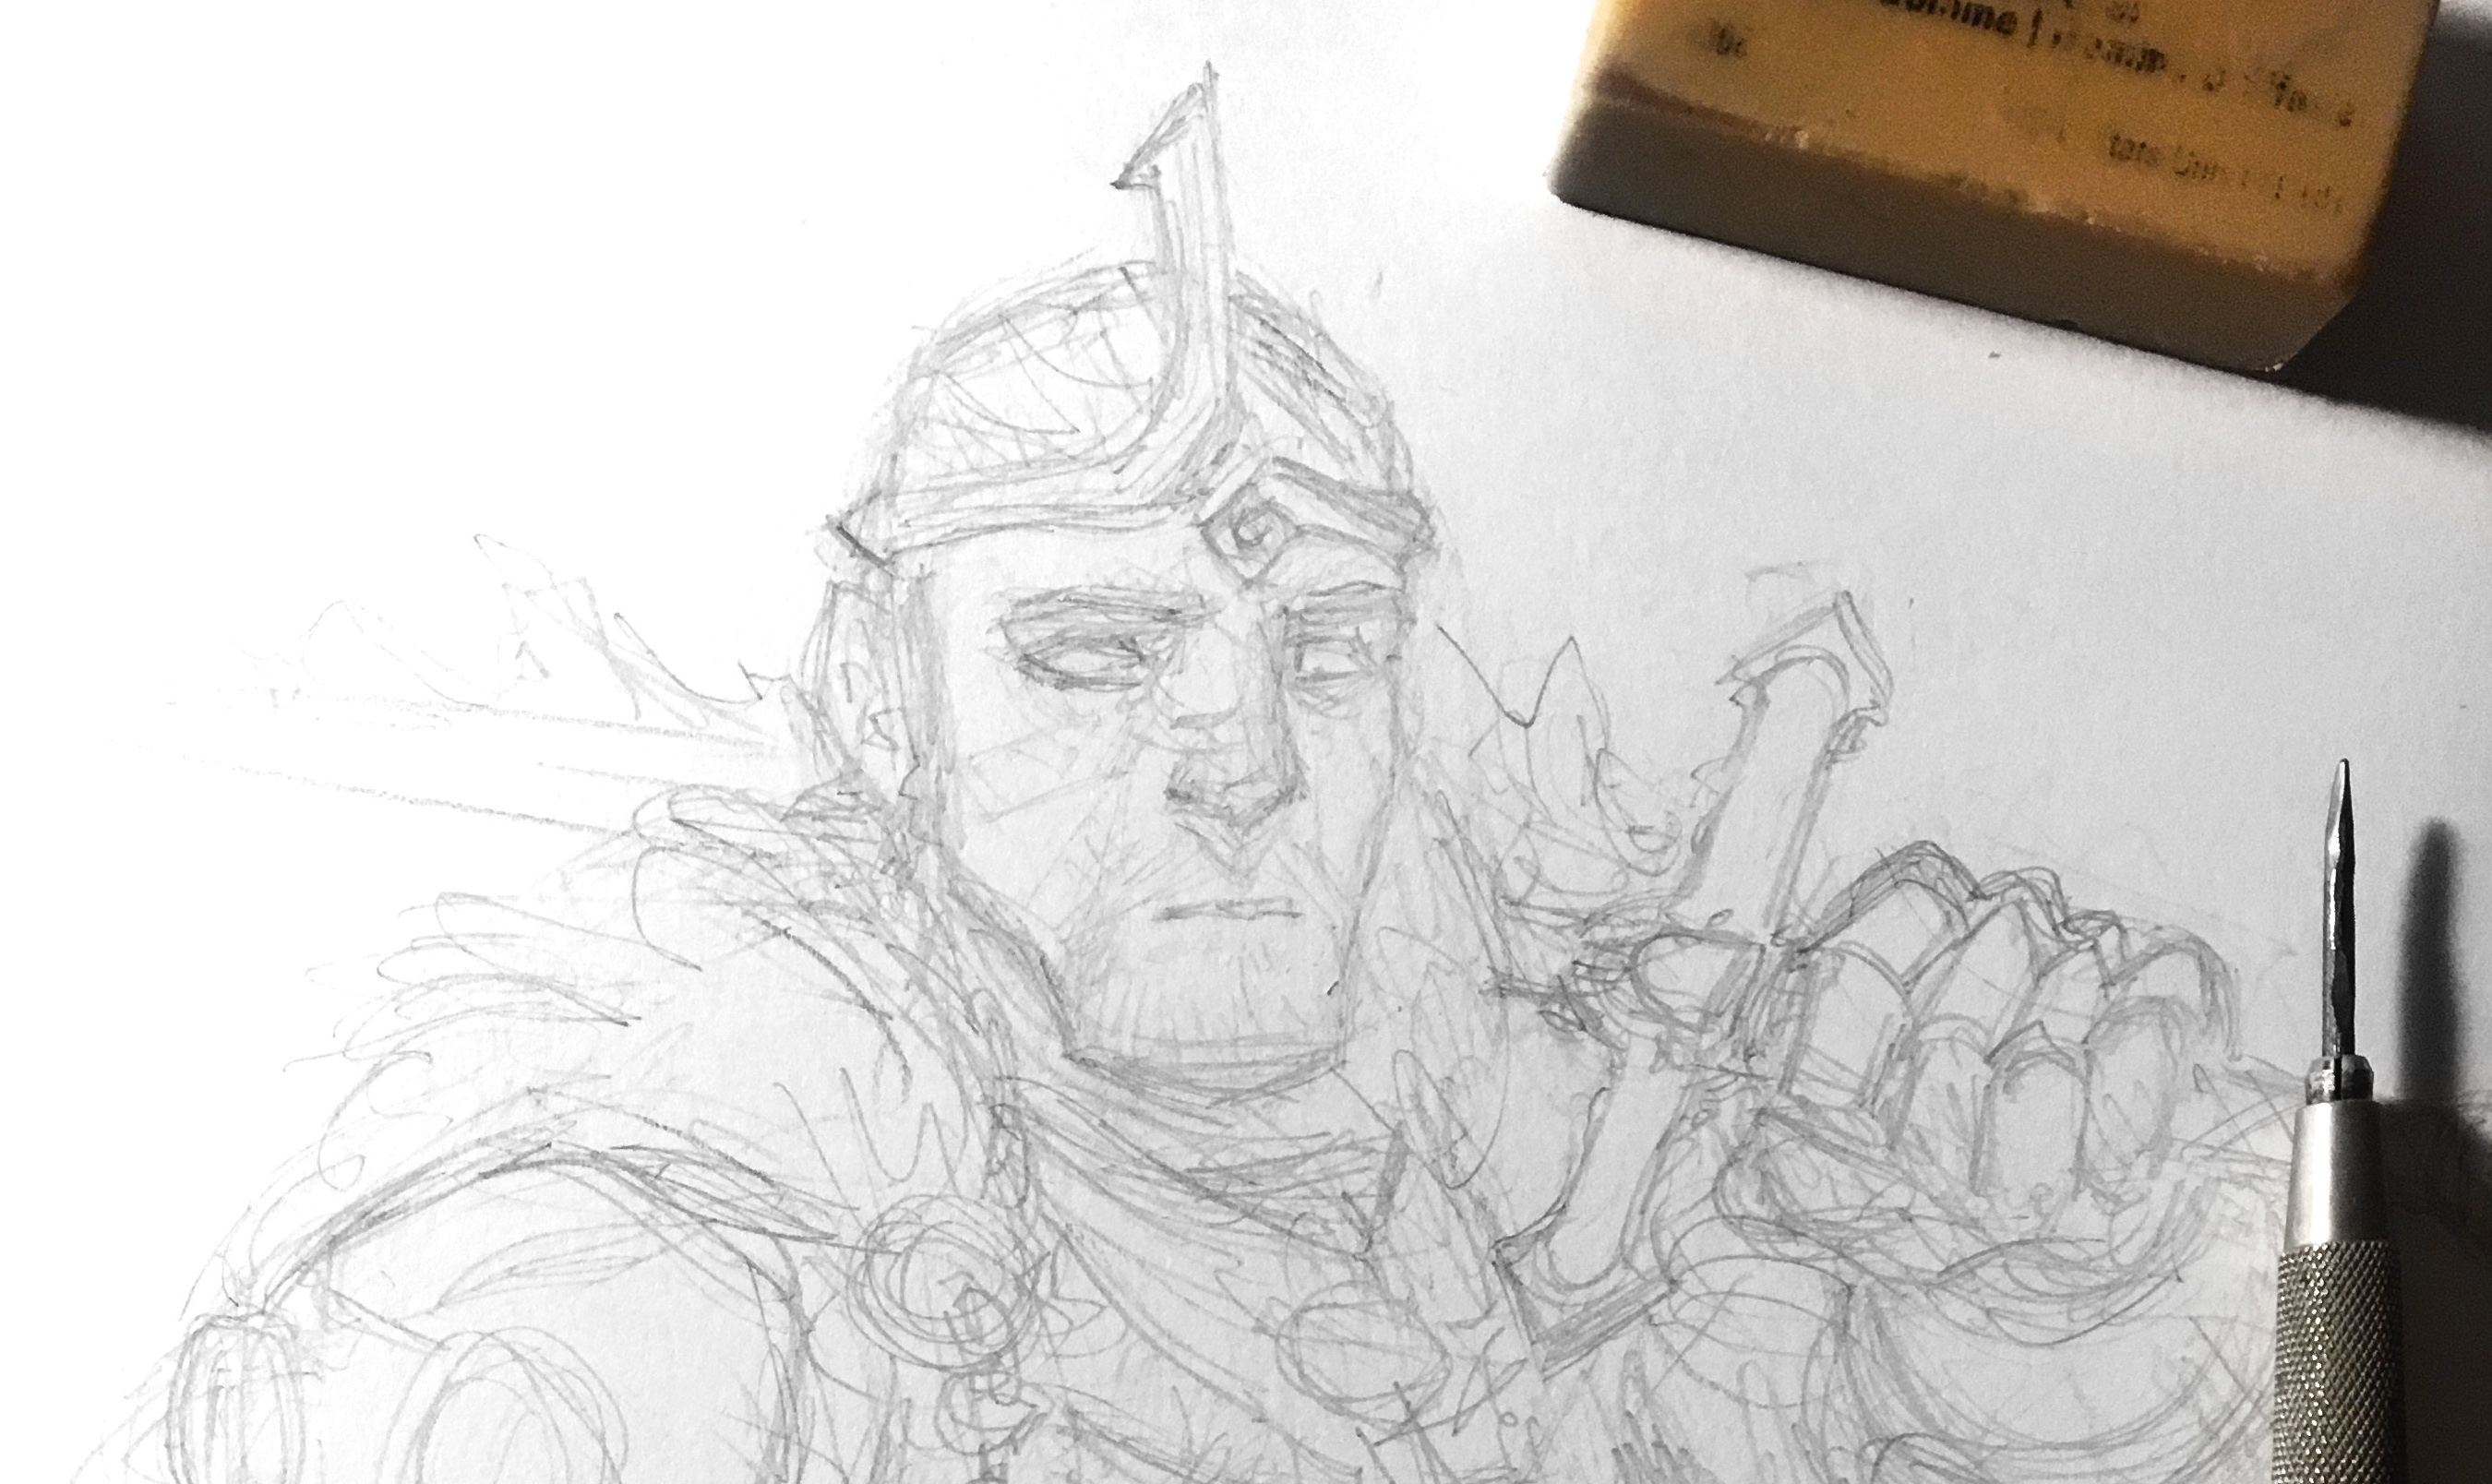 Pencil sketch of a man with a helmet and a sword